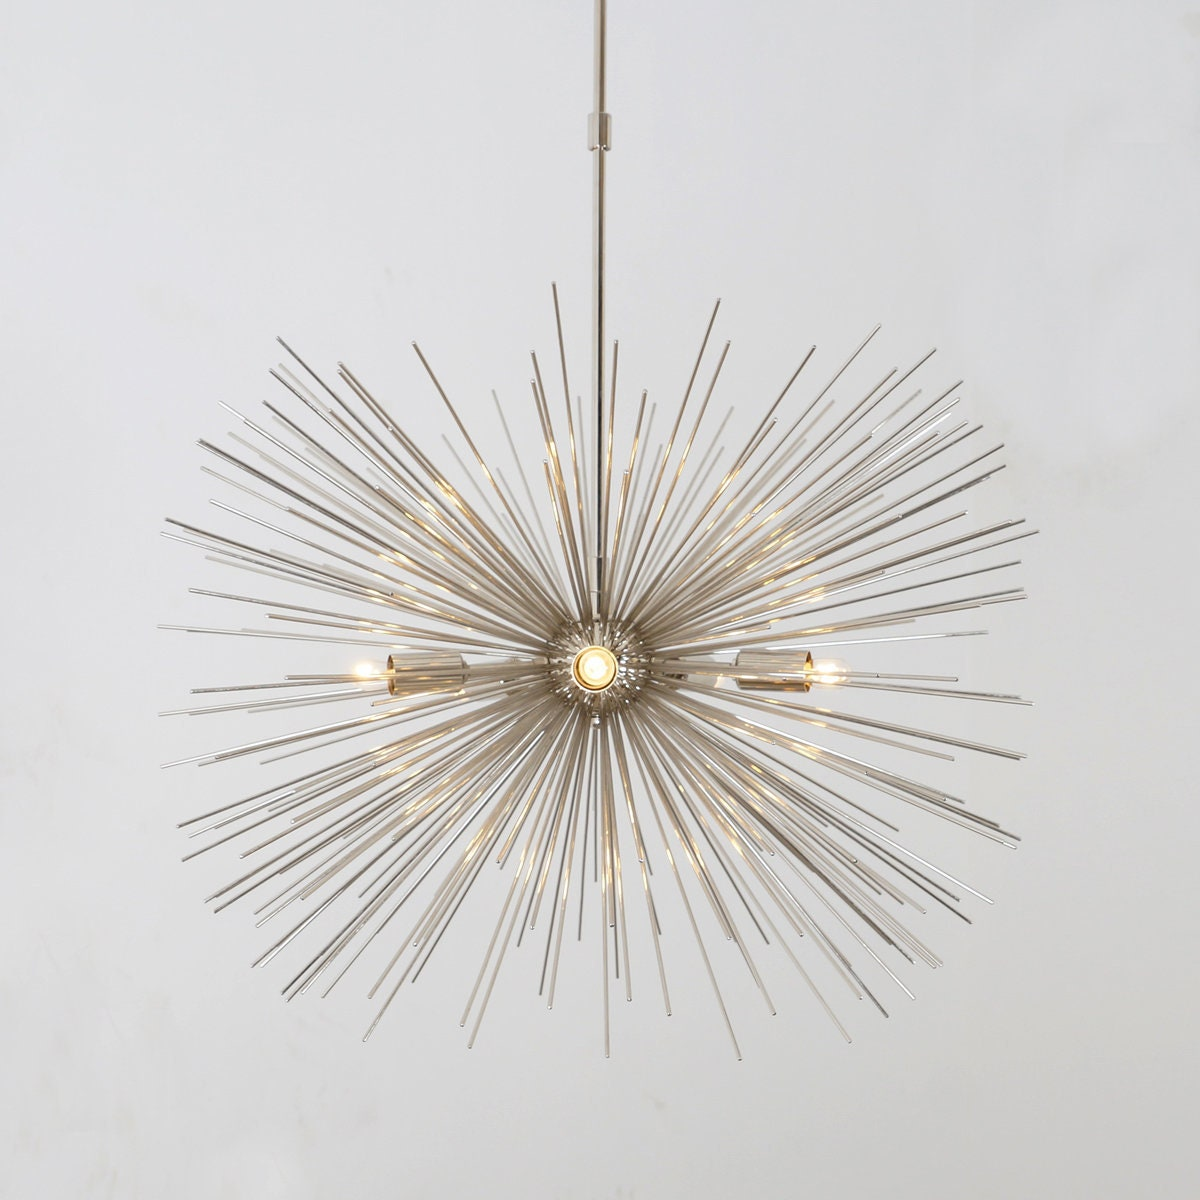 Mid century modern starburst chandelier ceiling lamp pendant light